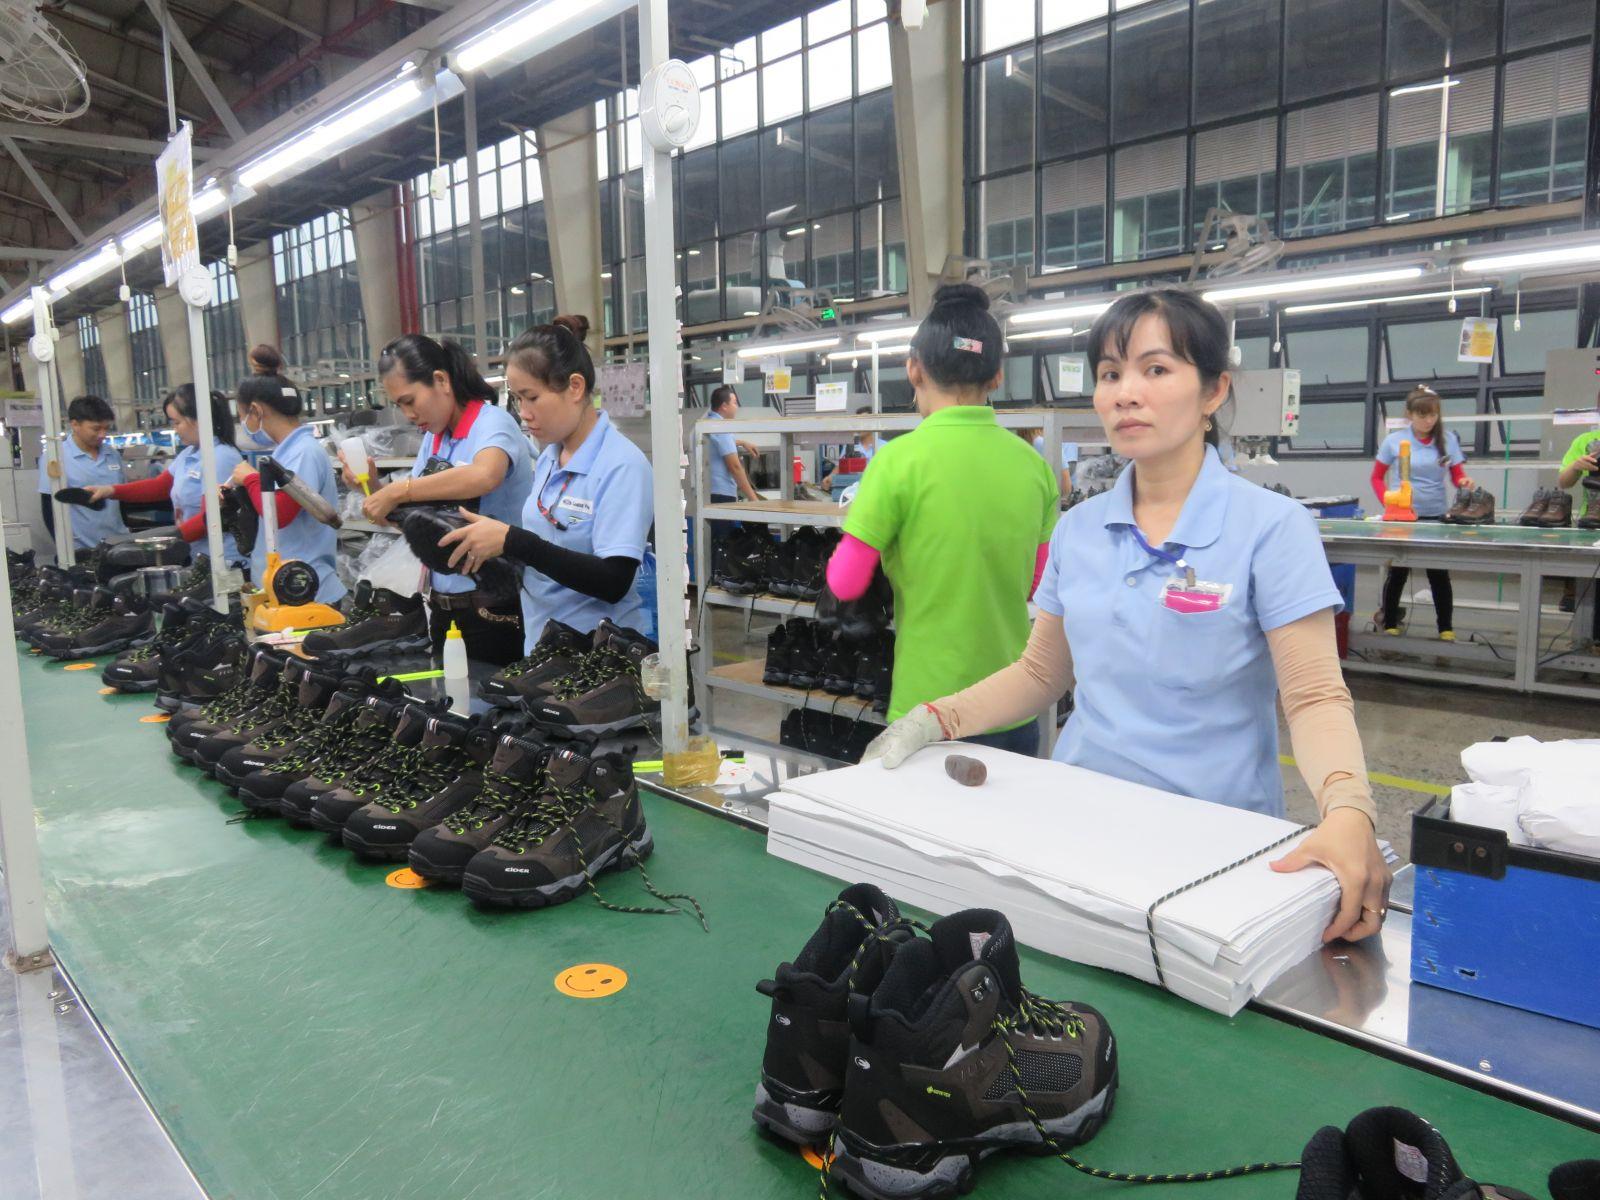 Export turnover in the first quarter decreased, including footwear